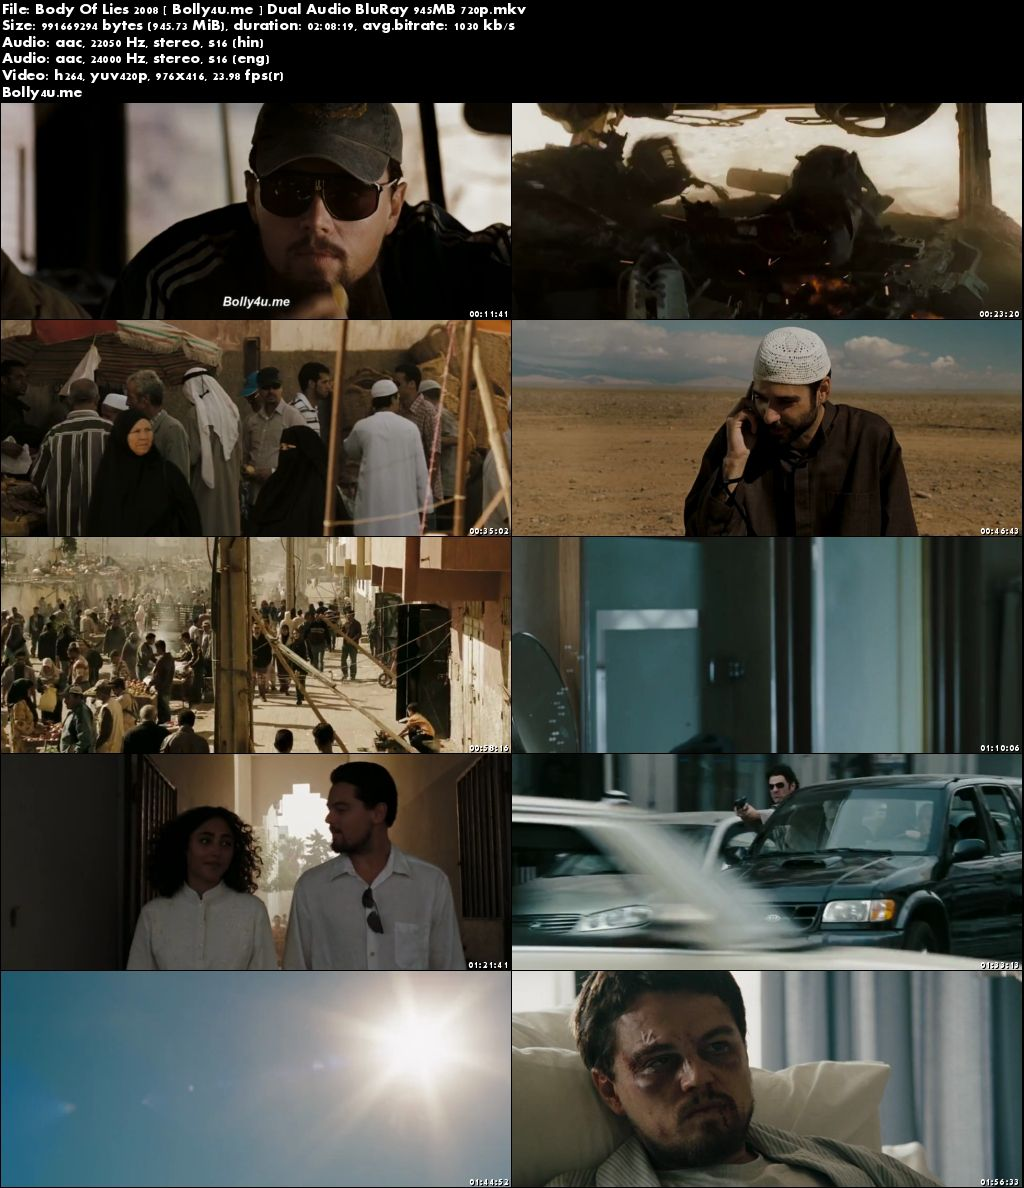 Body Of Lies 2008 BluRay 950MB Hindi Dubbed Dual Audio 720p Download